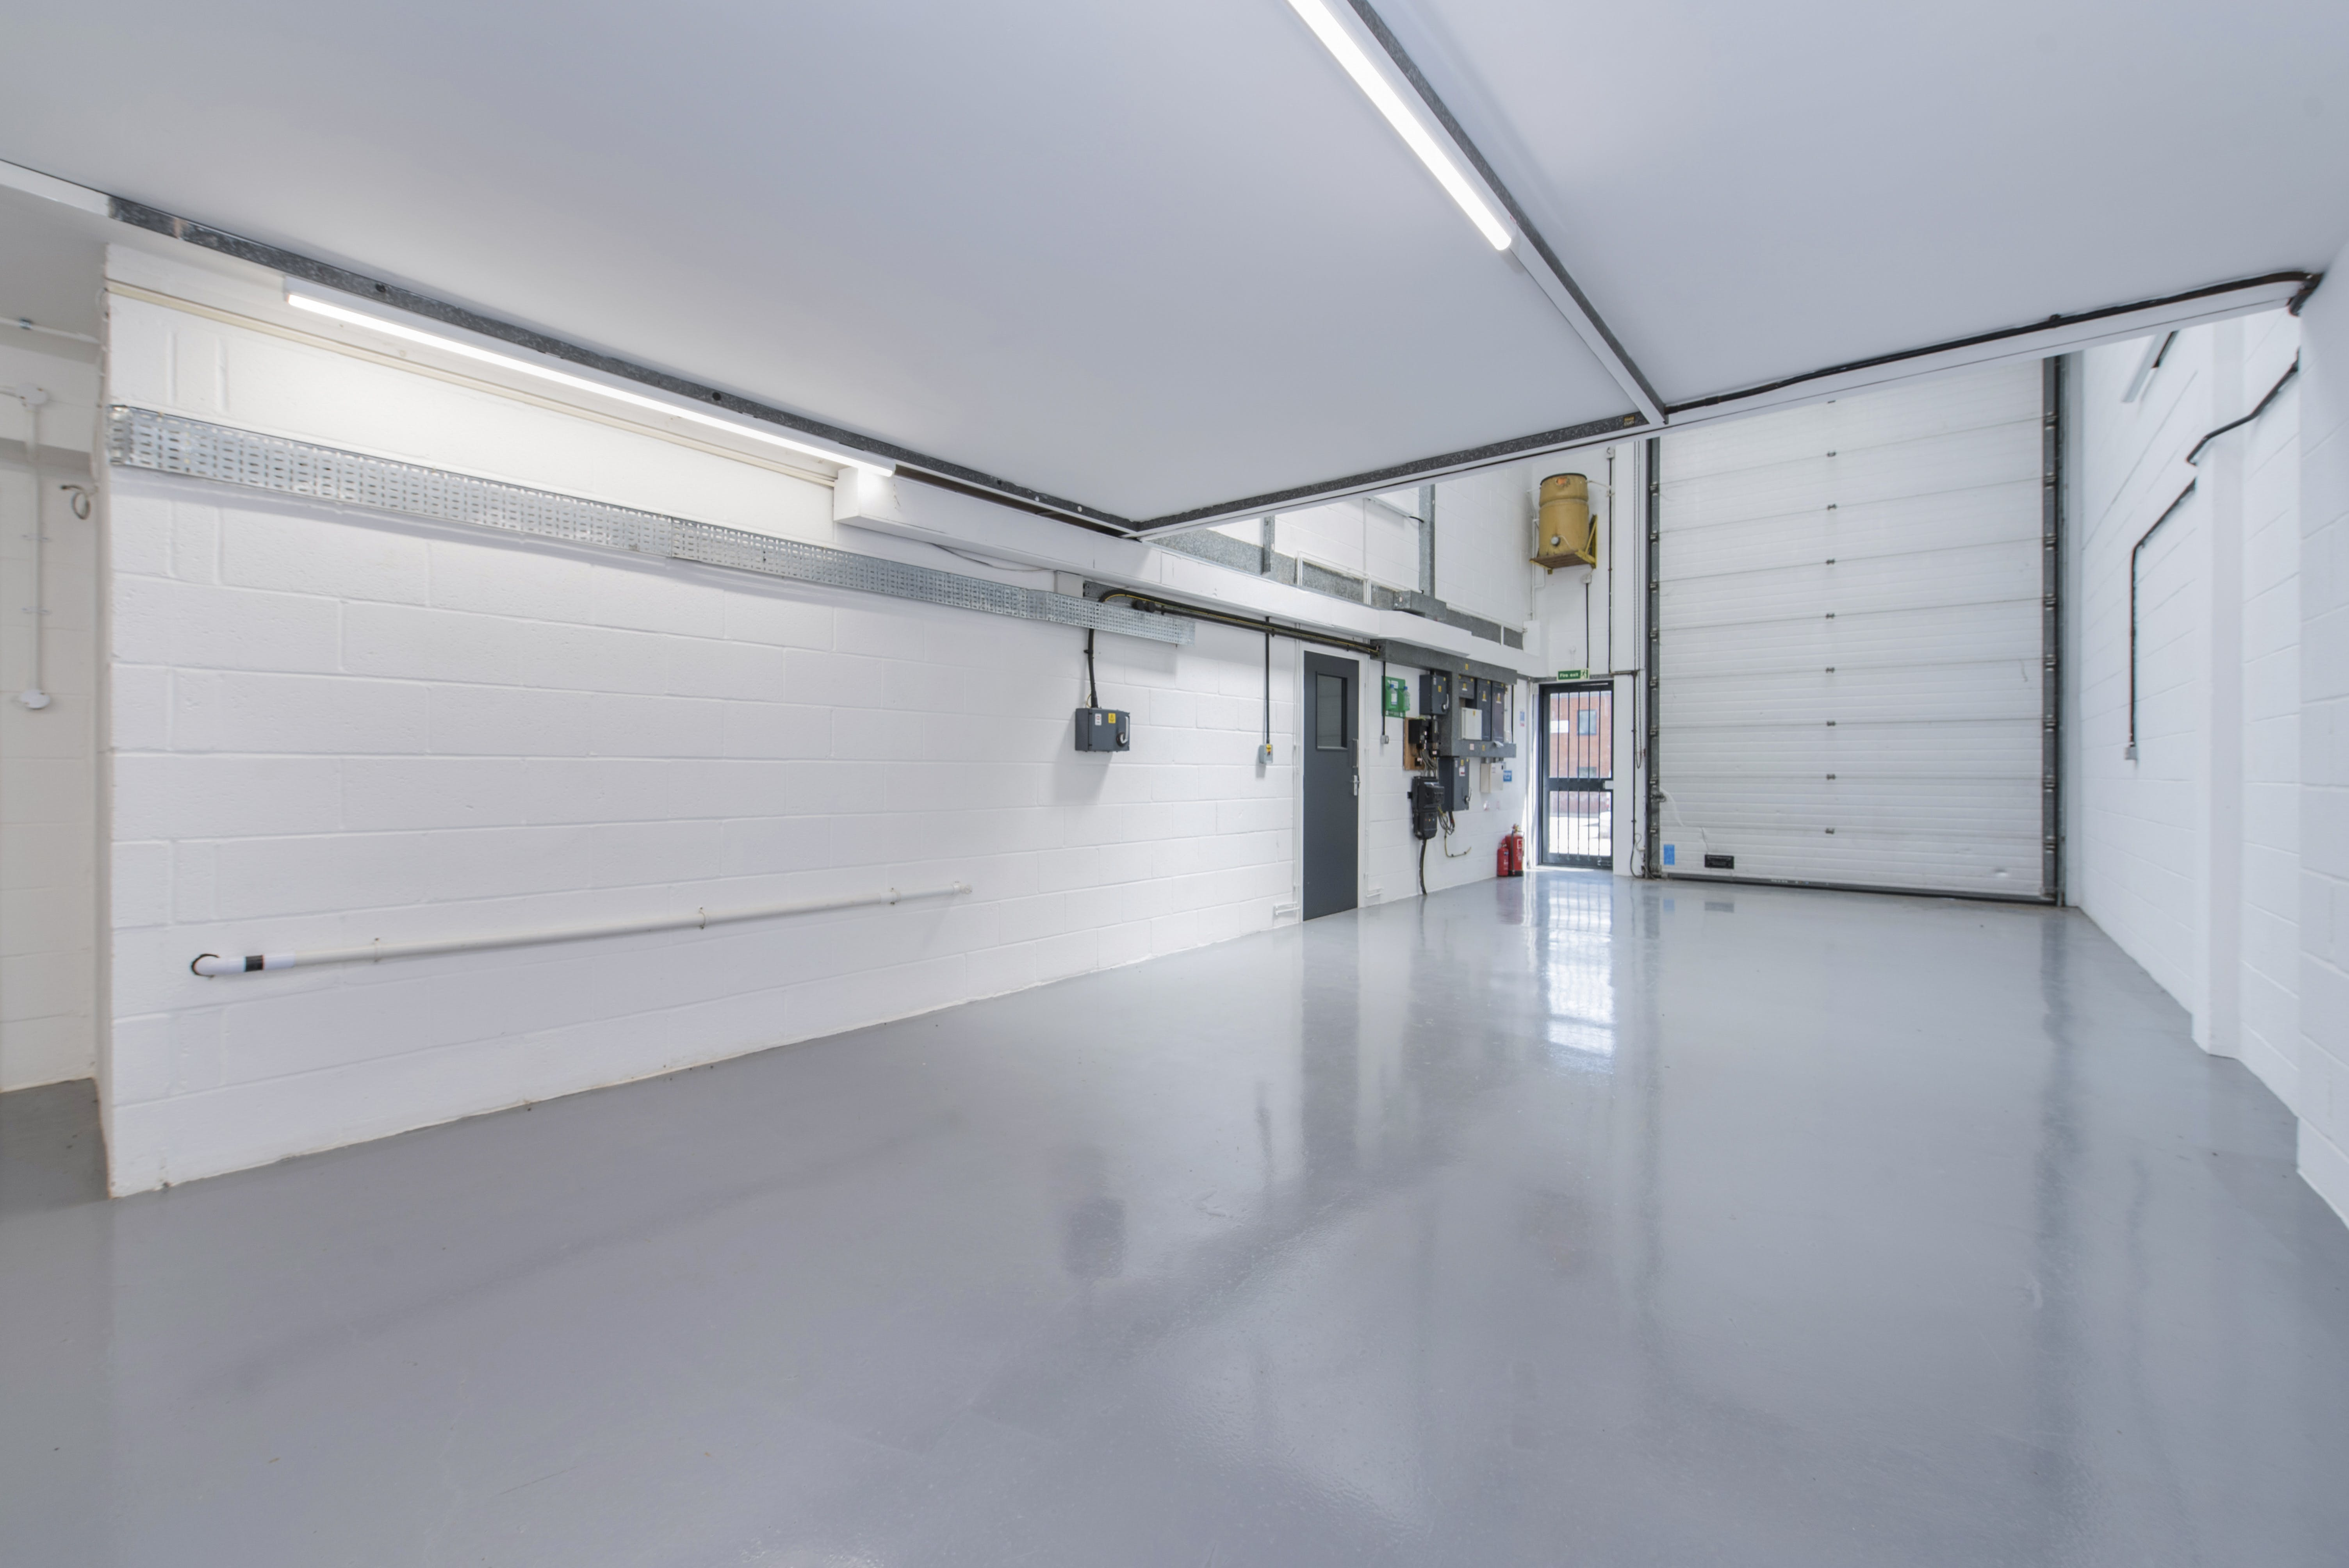 14 Meadow View, Long Crendon, Office / Industrial To Let - F-14.jpg